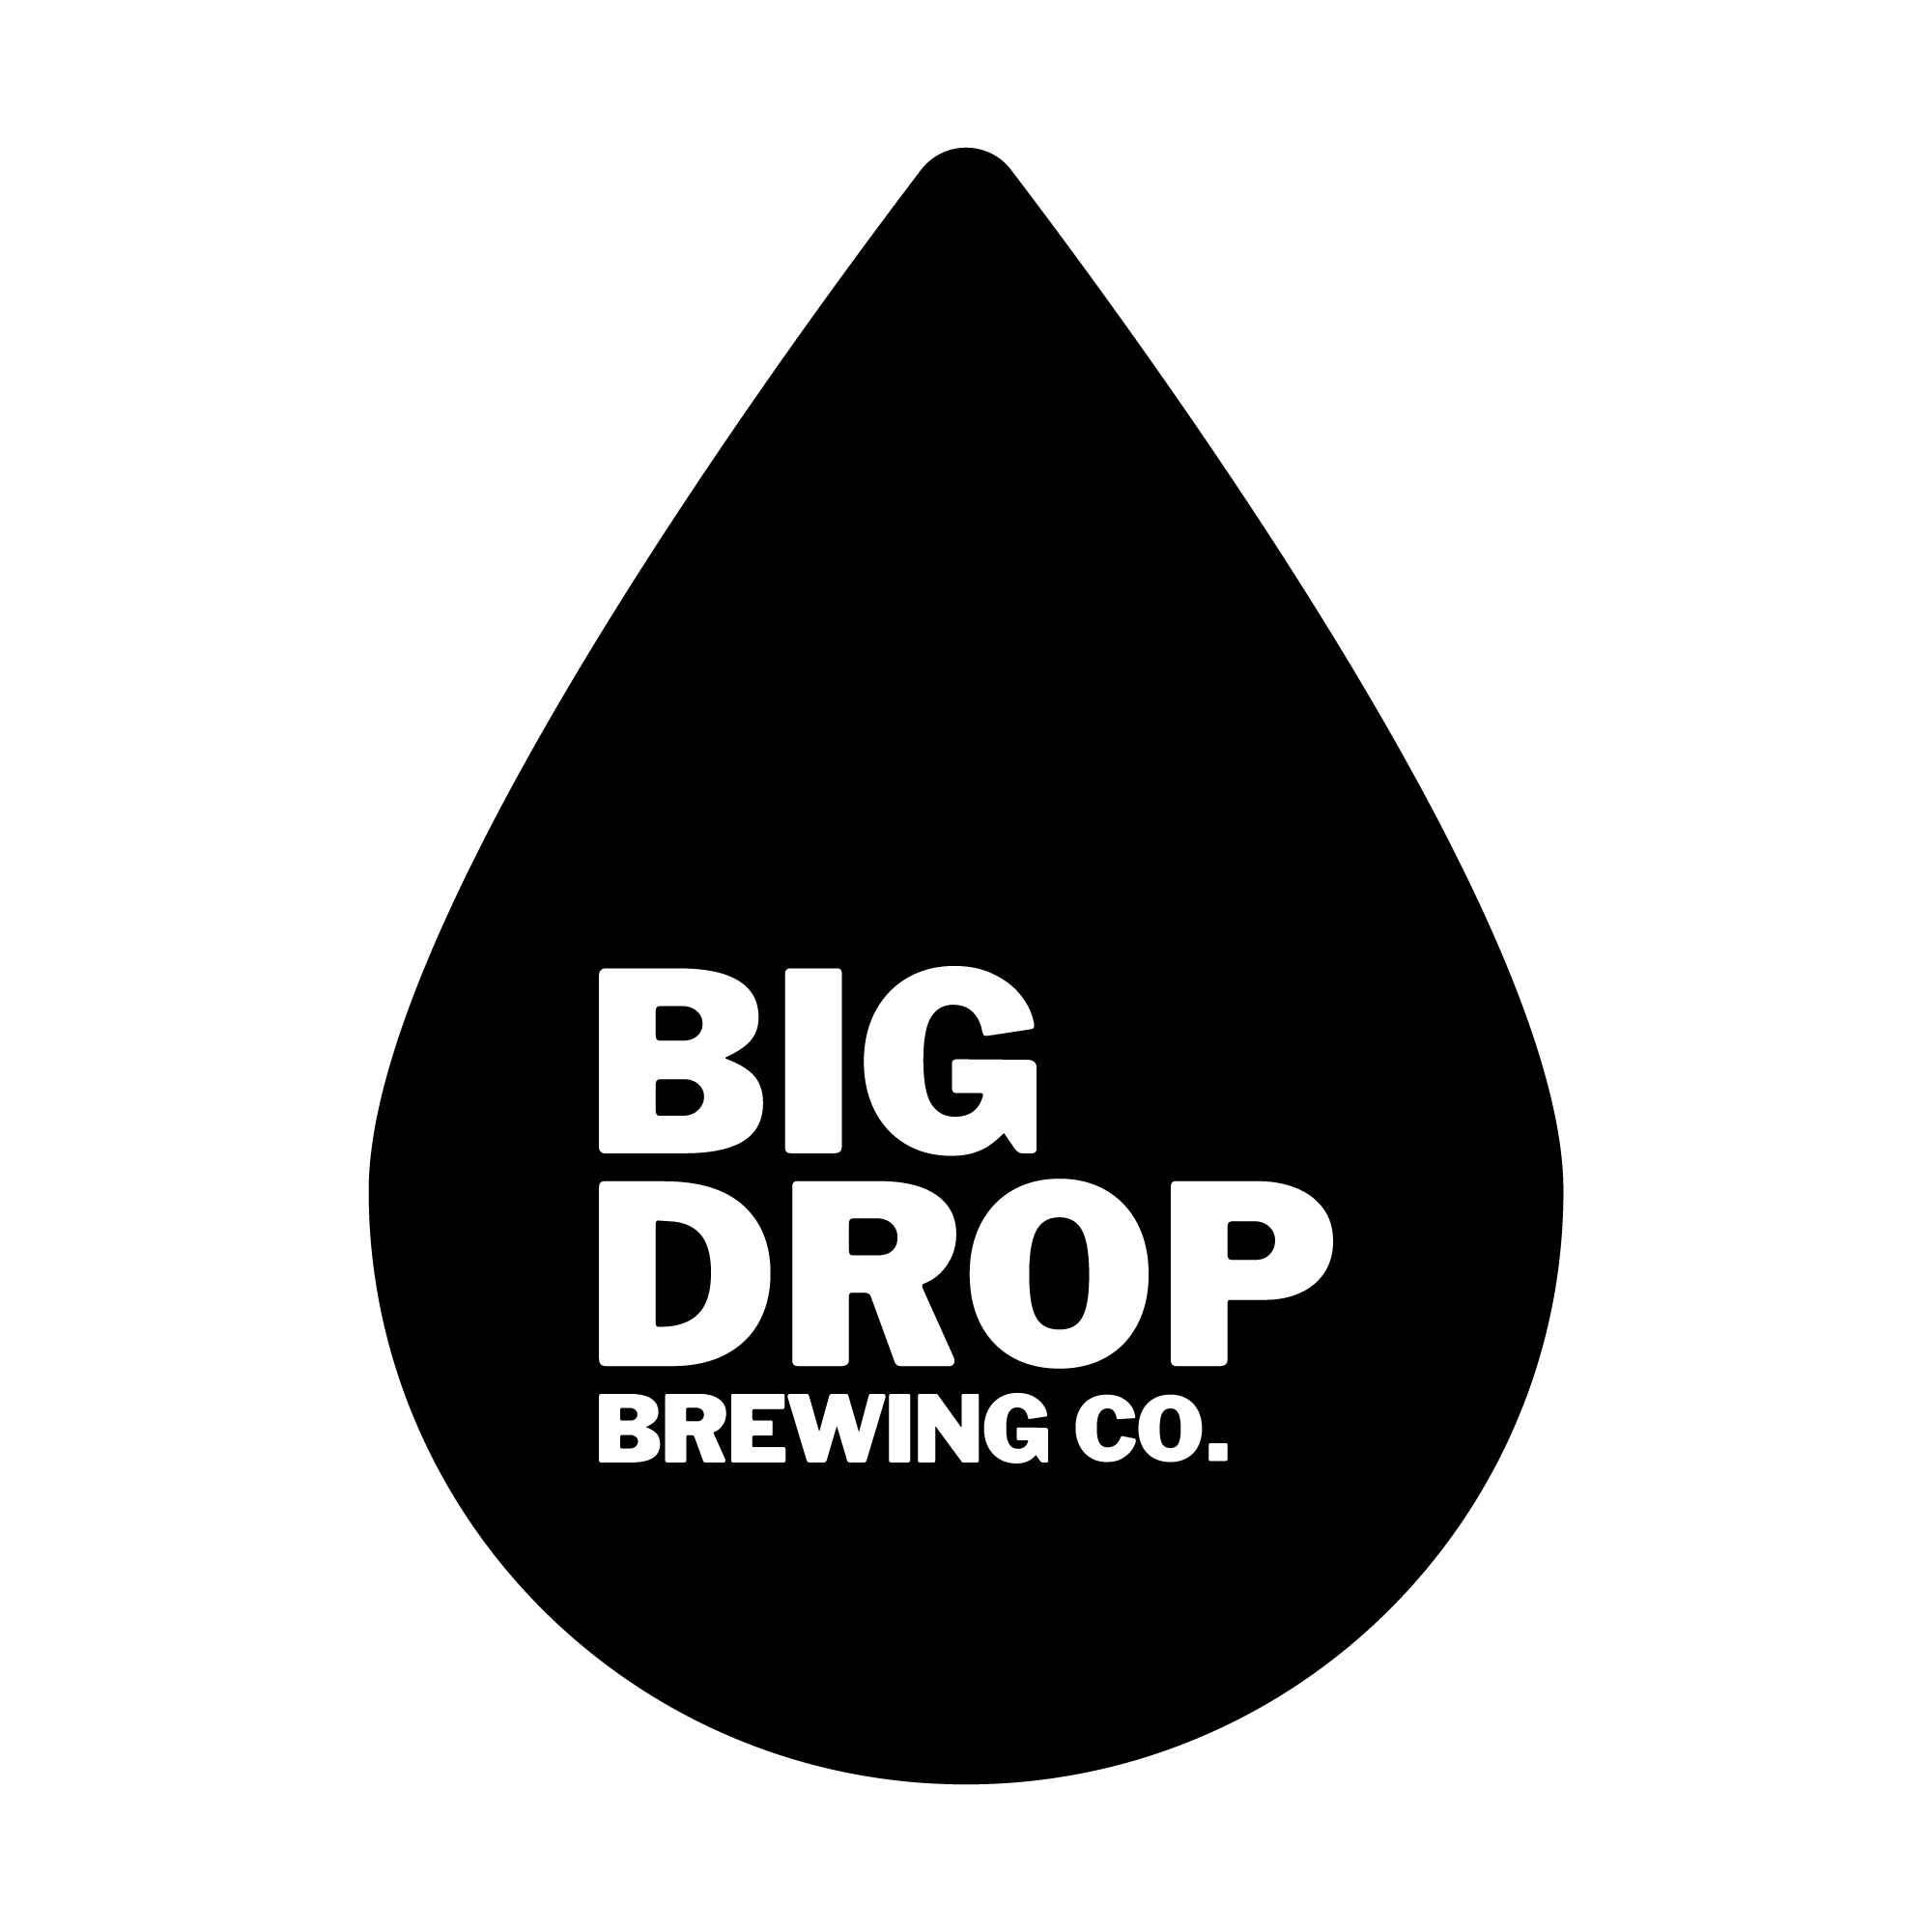 Big Drop Brewing